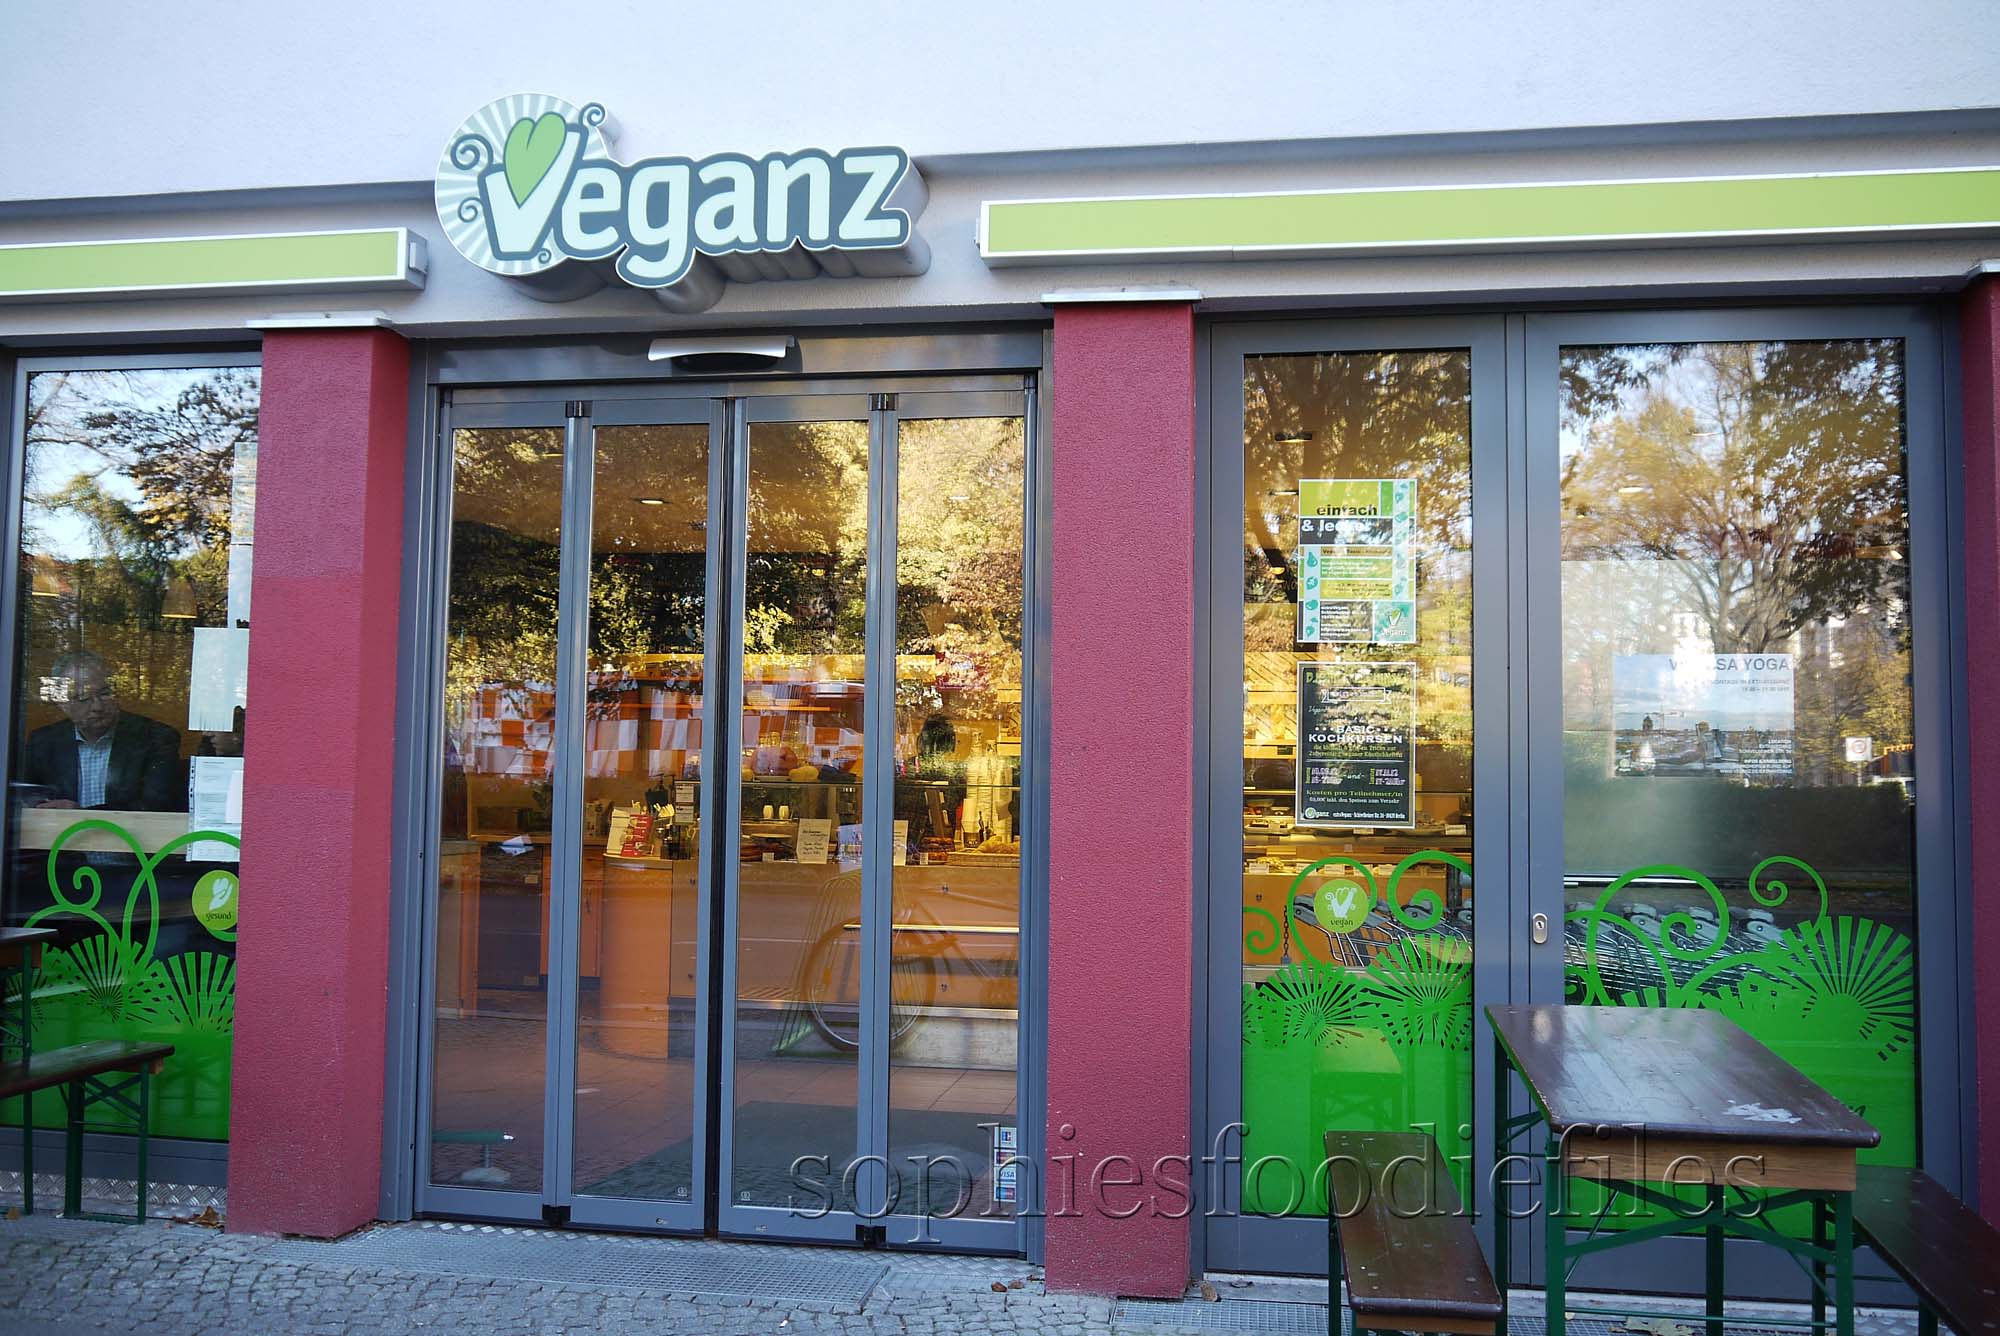 Vegan Foods That I Can Buy From The Supermarket